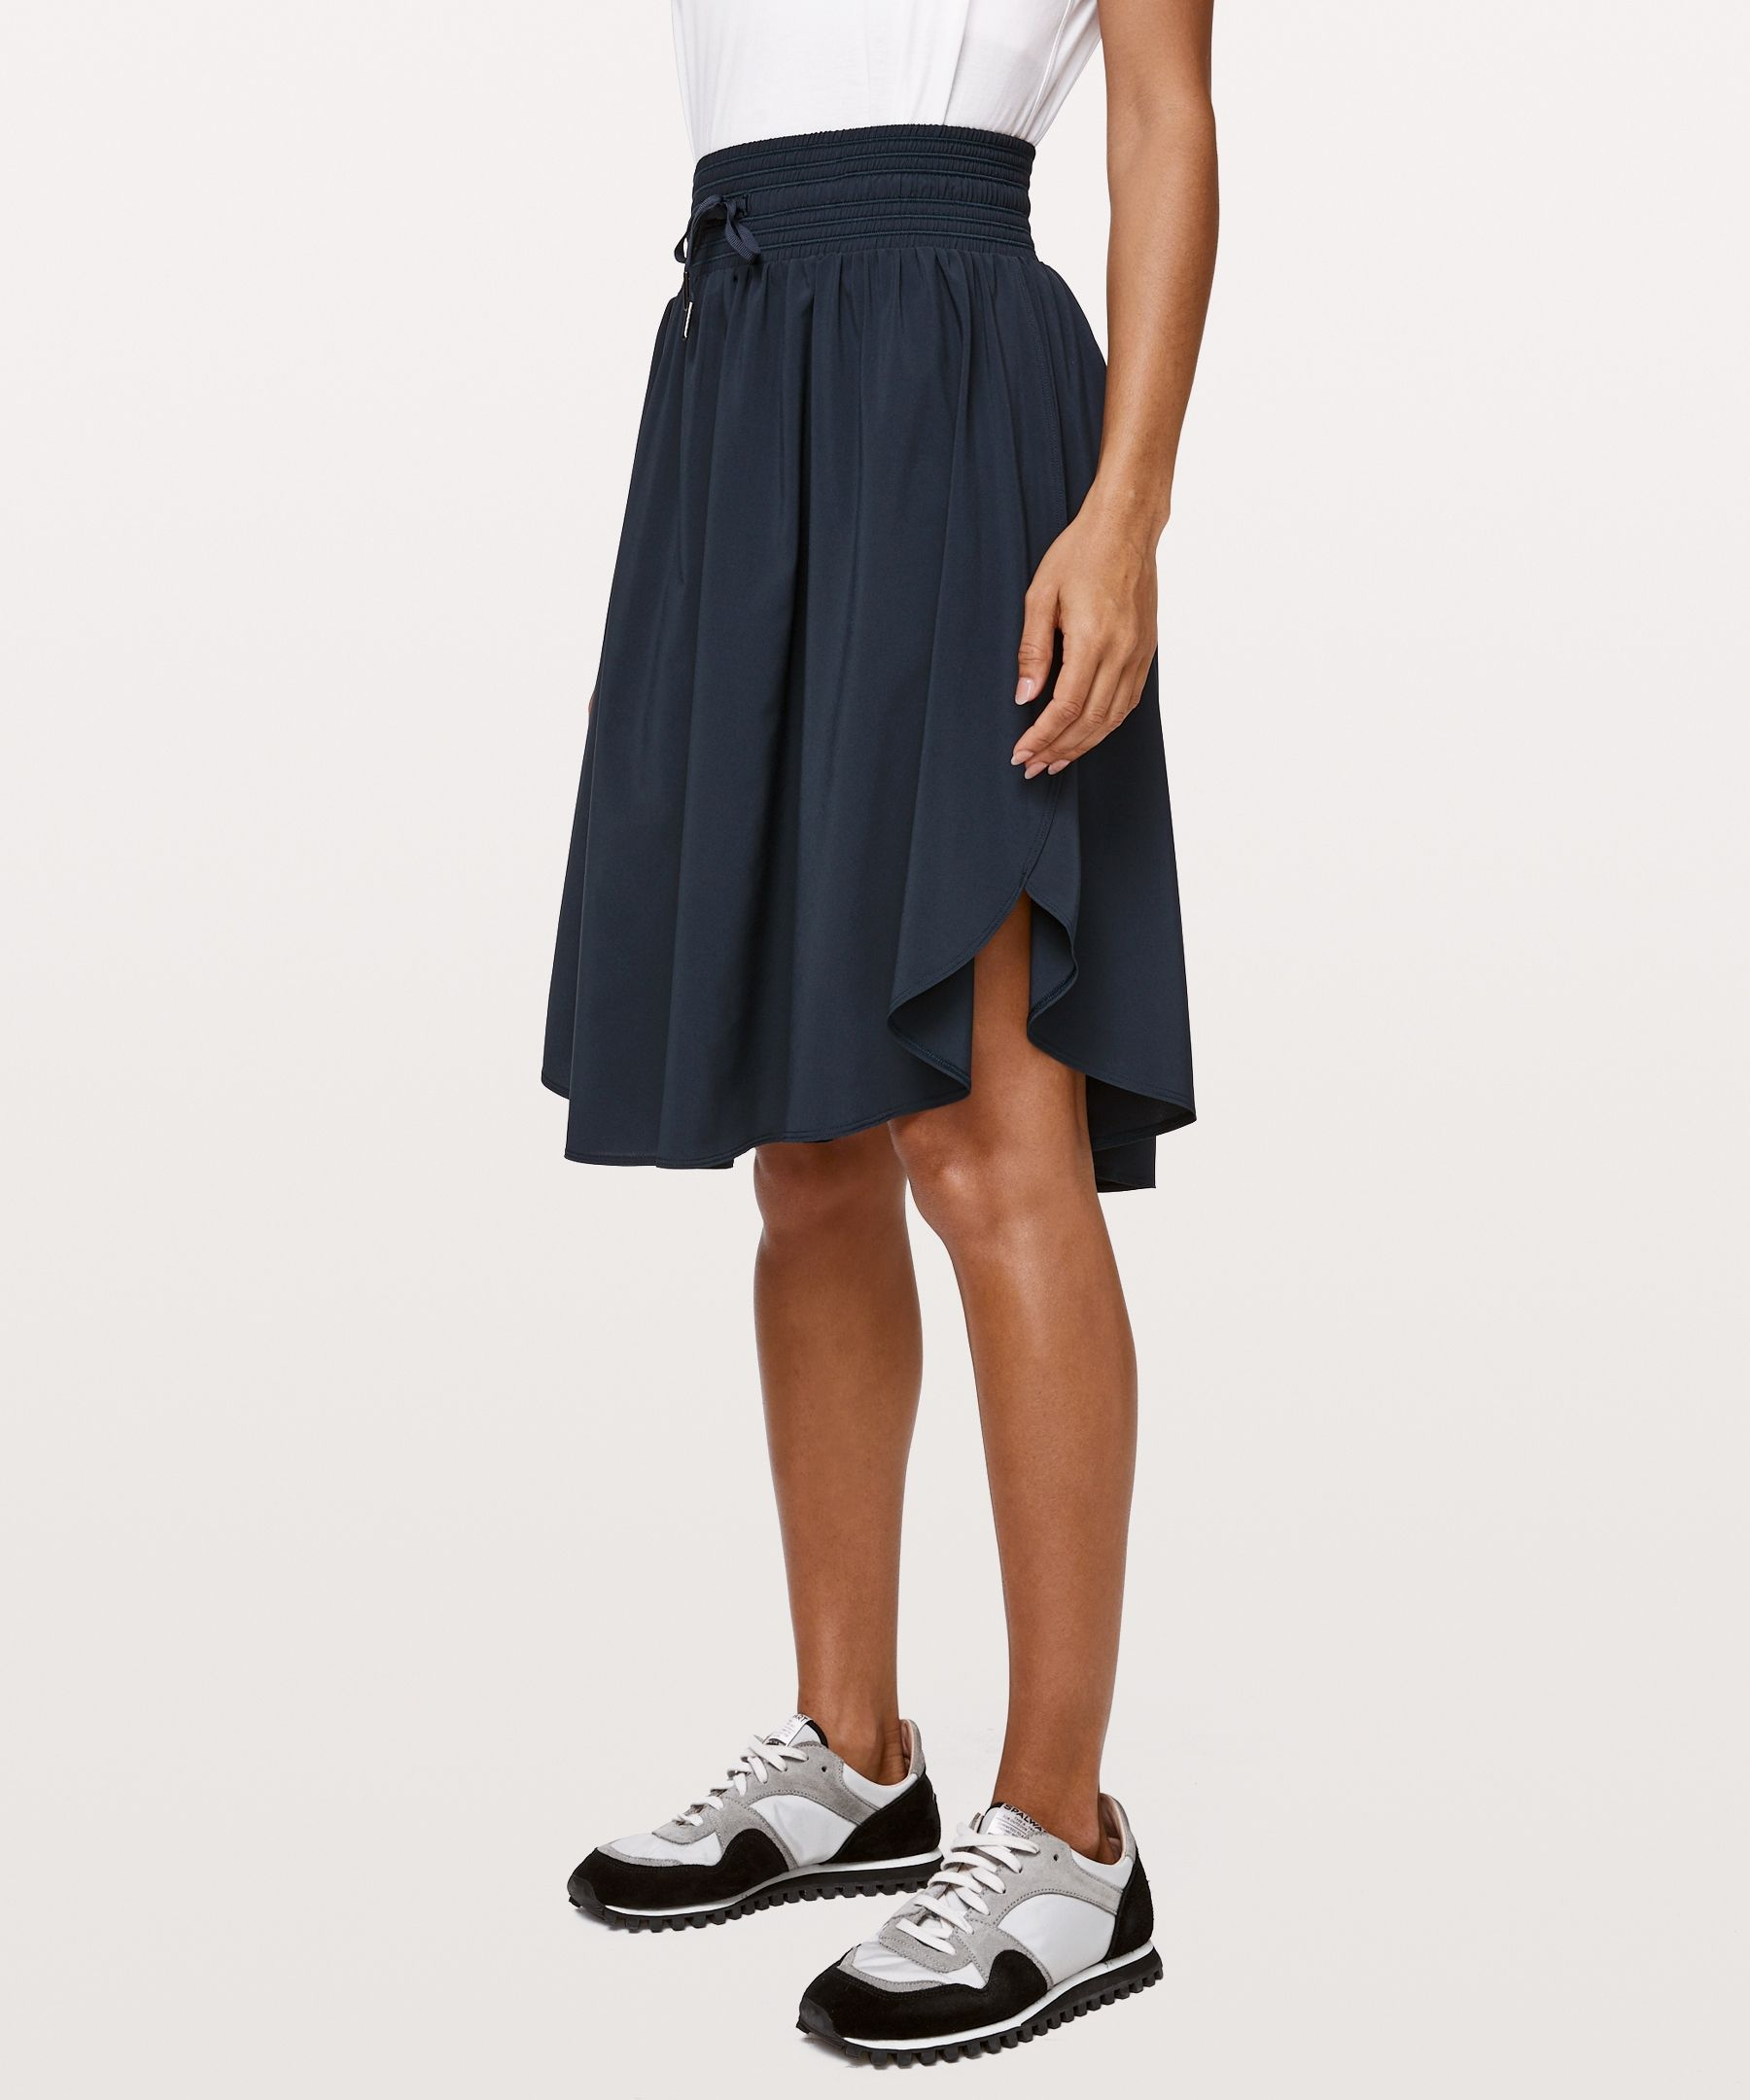 The Everyday Skirt | Women's Skirts | lululemon athletica 2